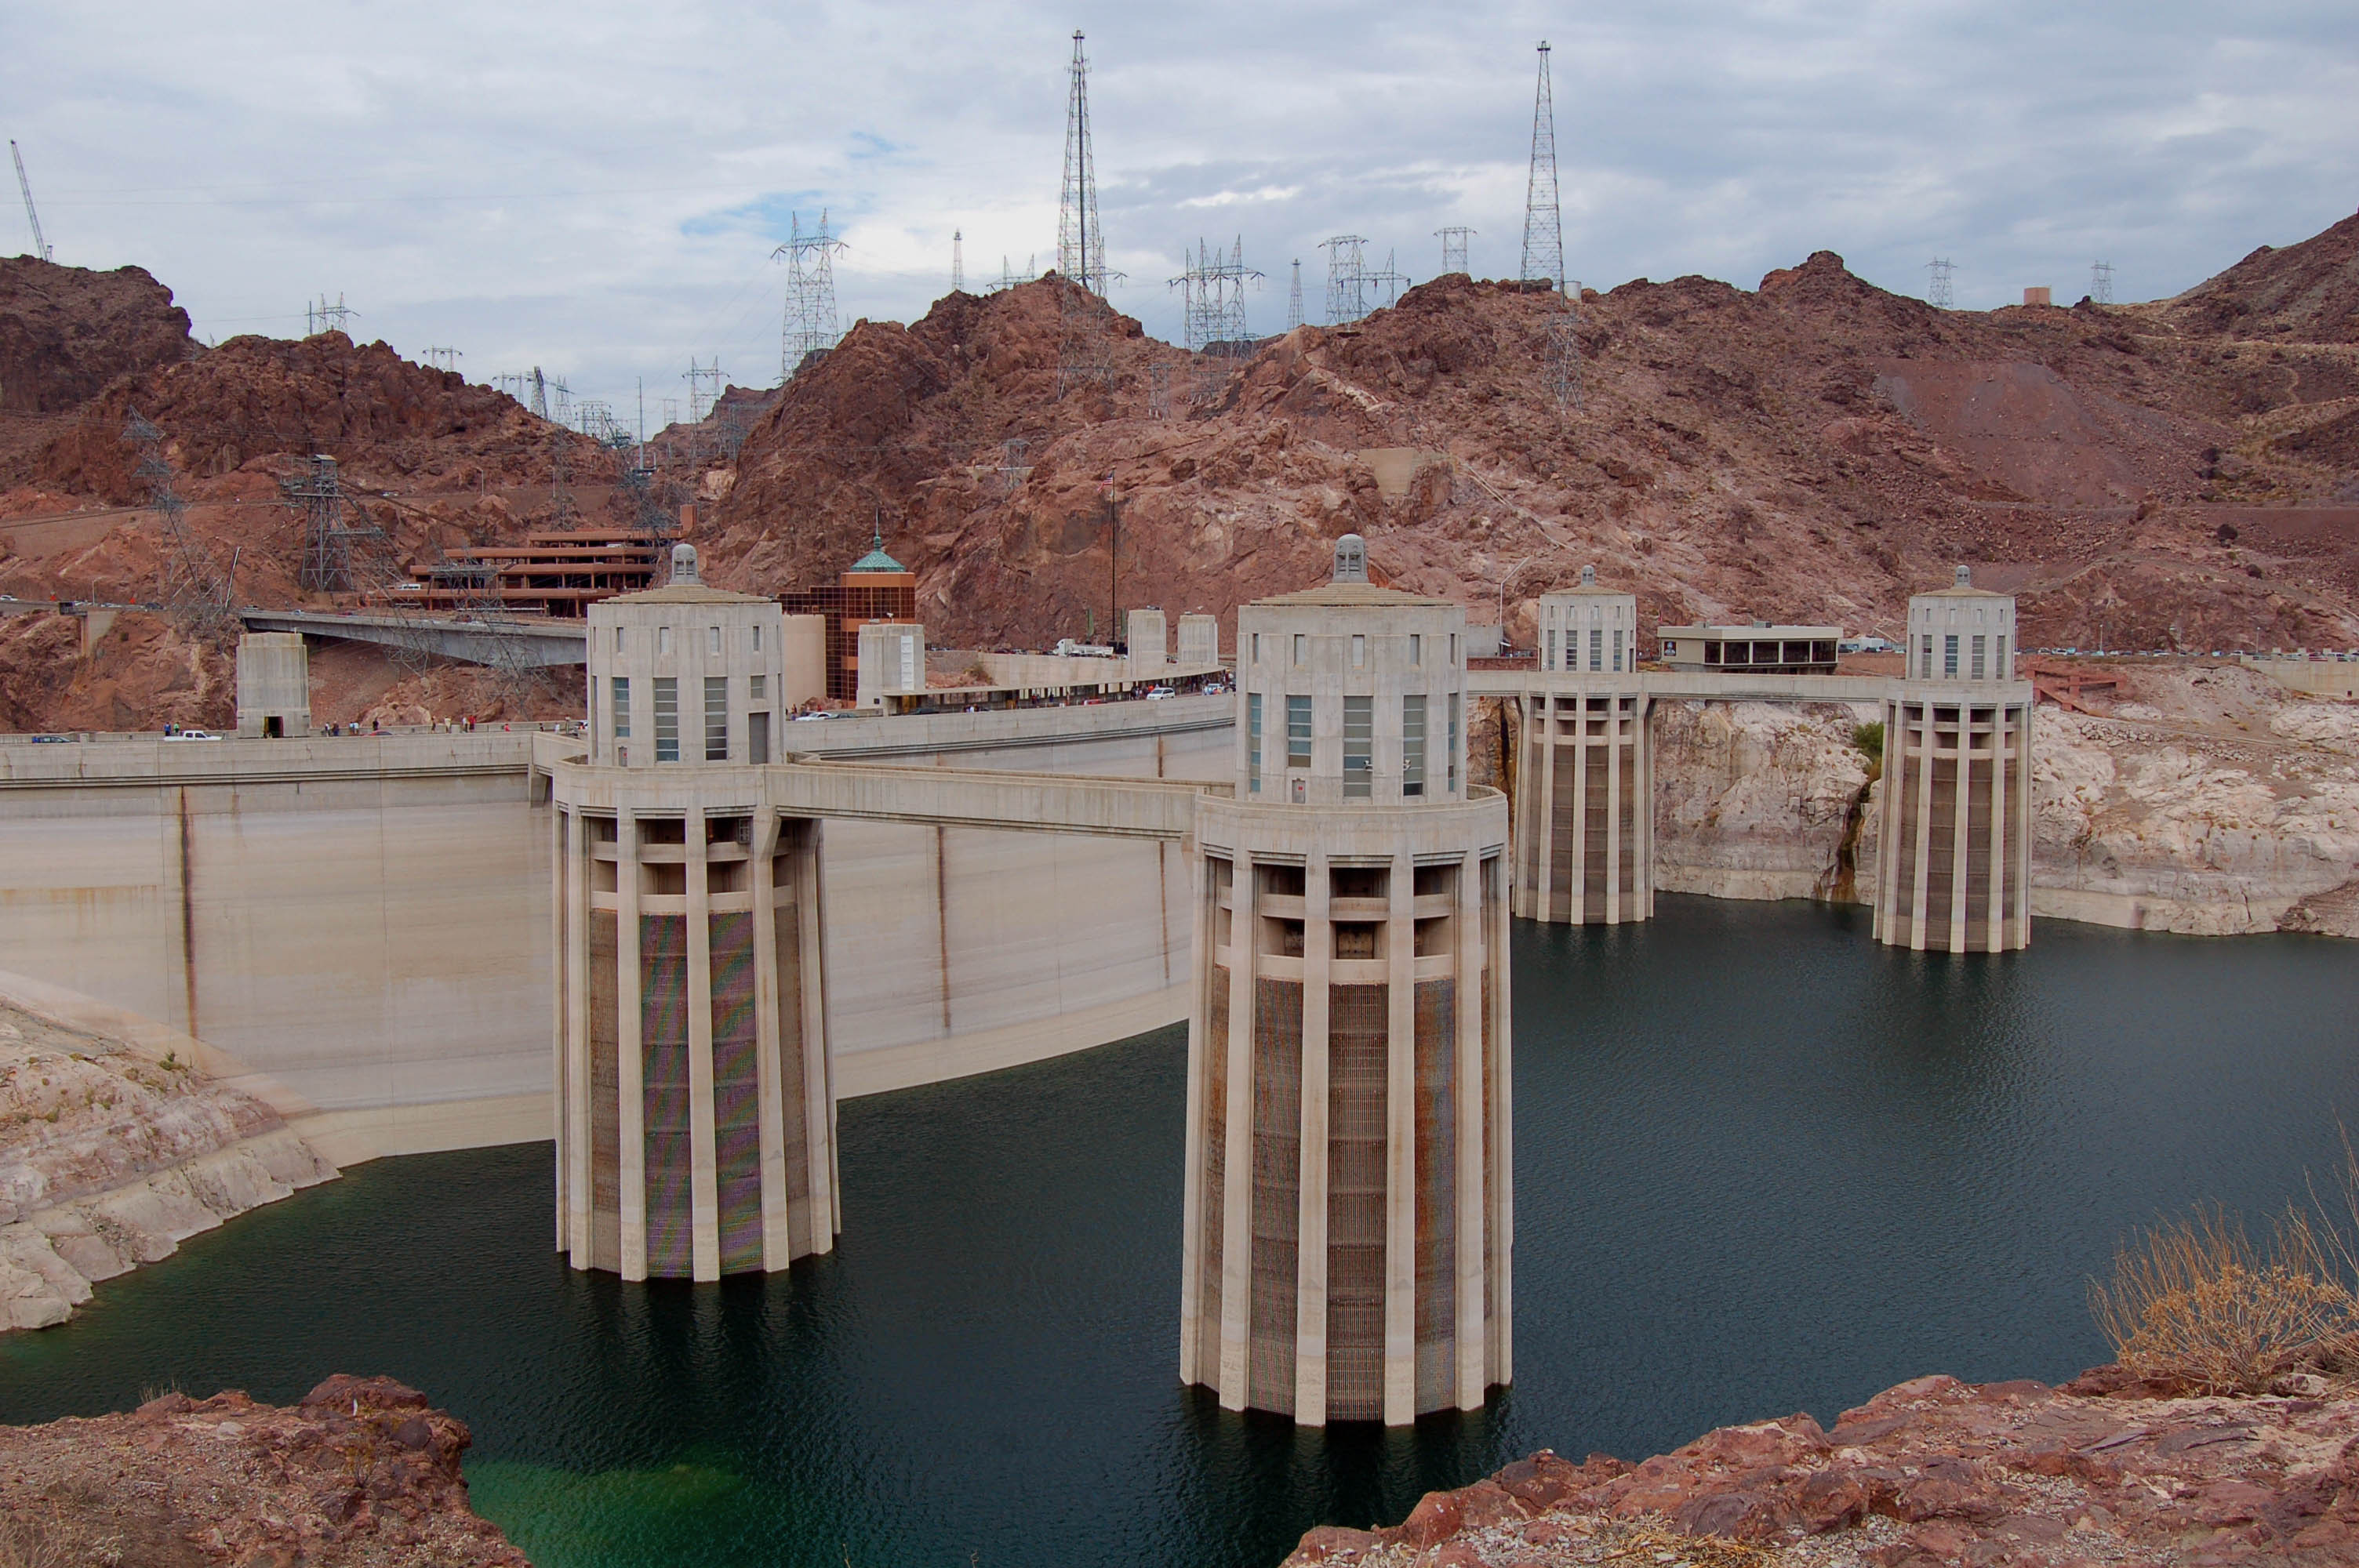 Large dams and their environmental impacts